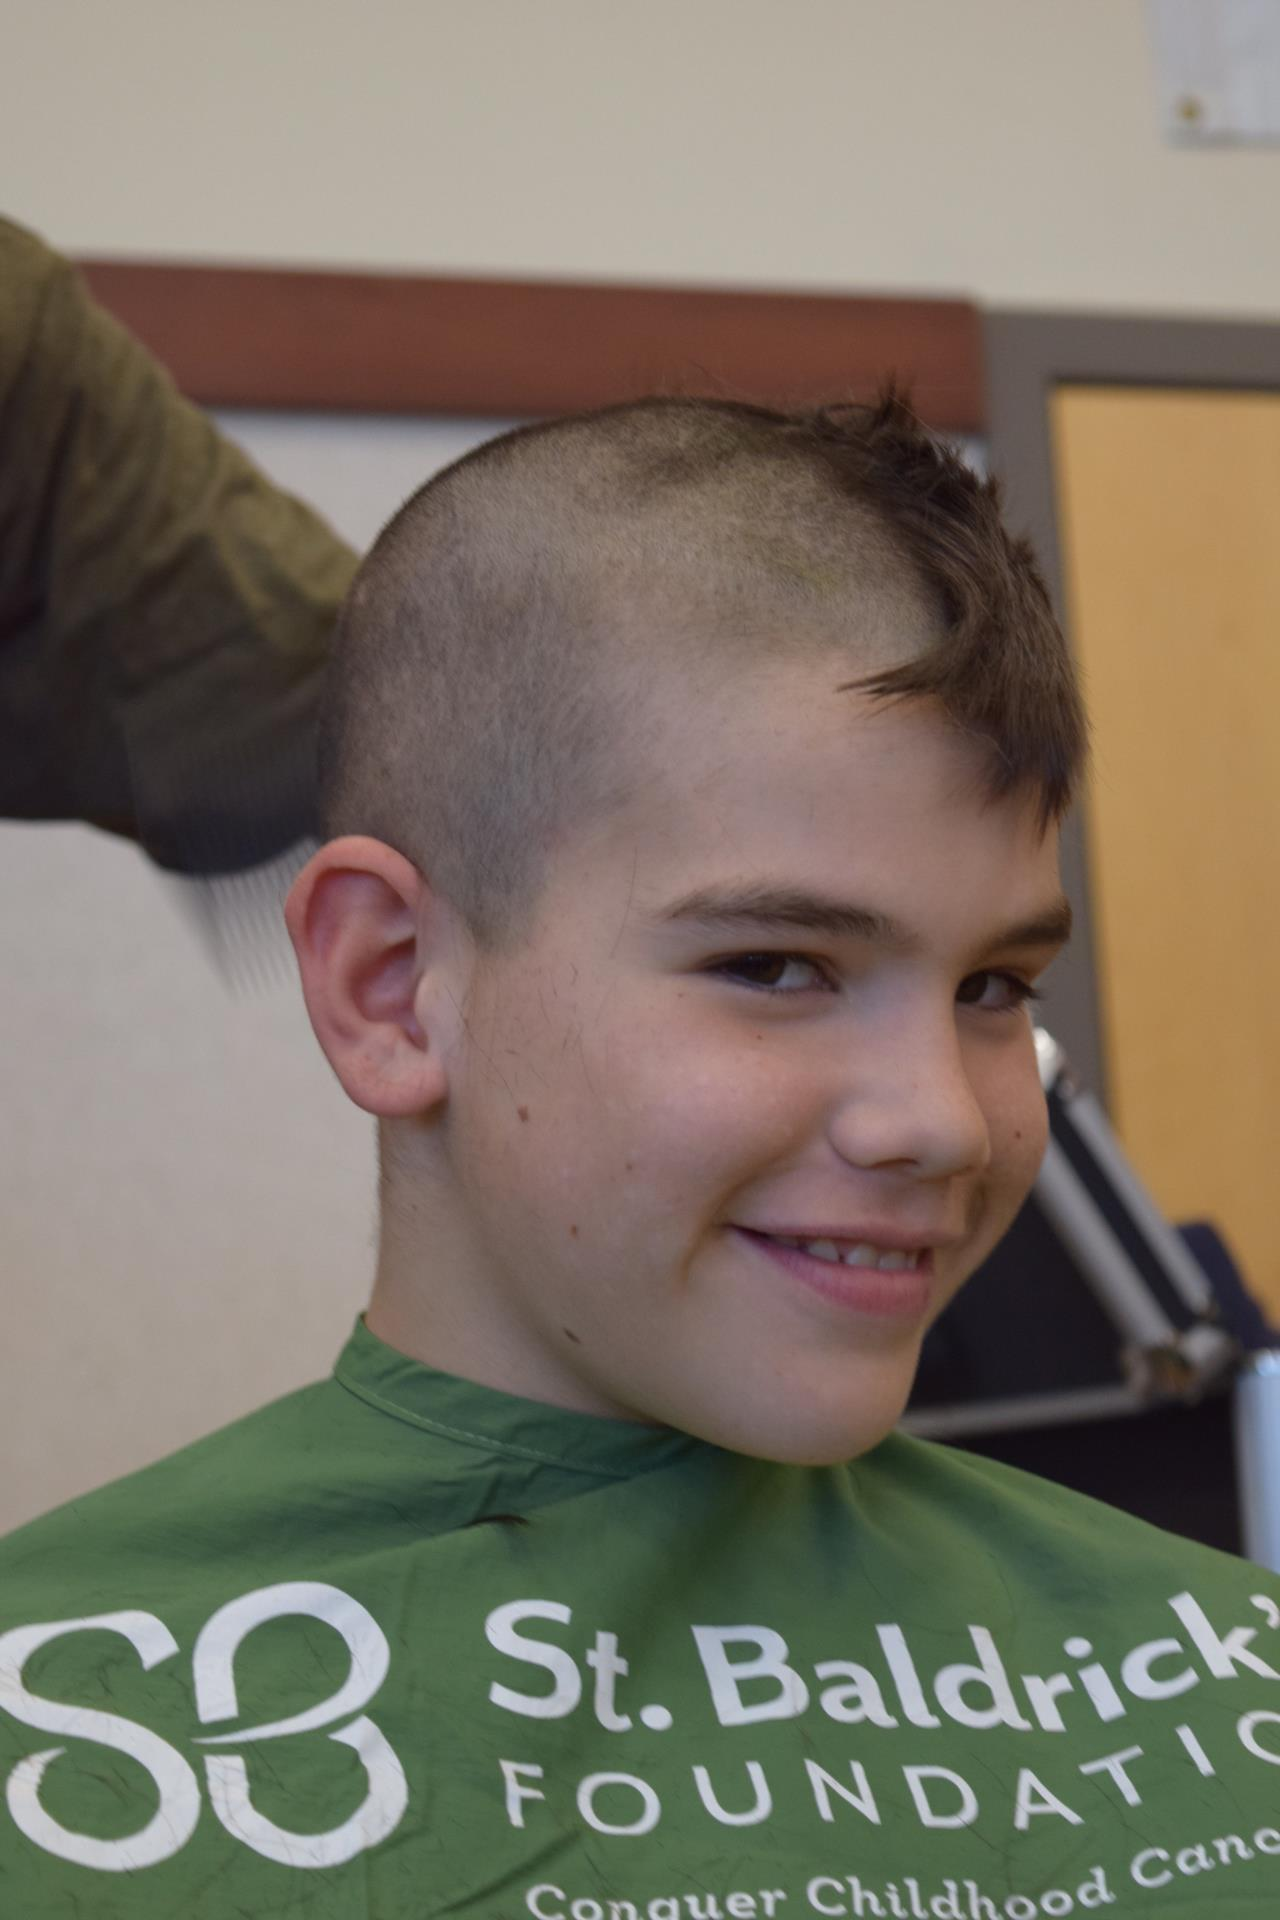 Male student smiling while getting head shaved